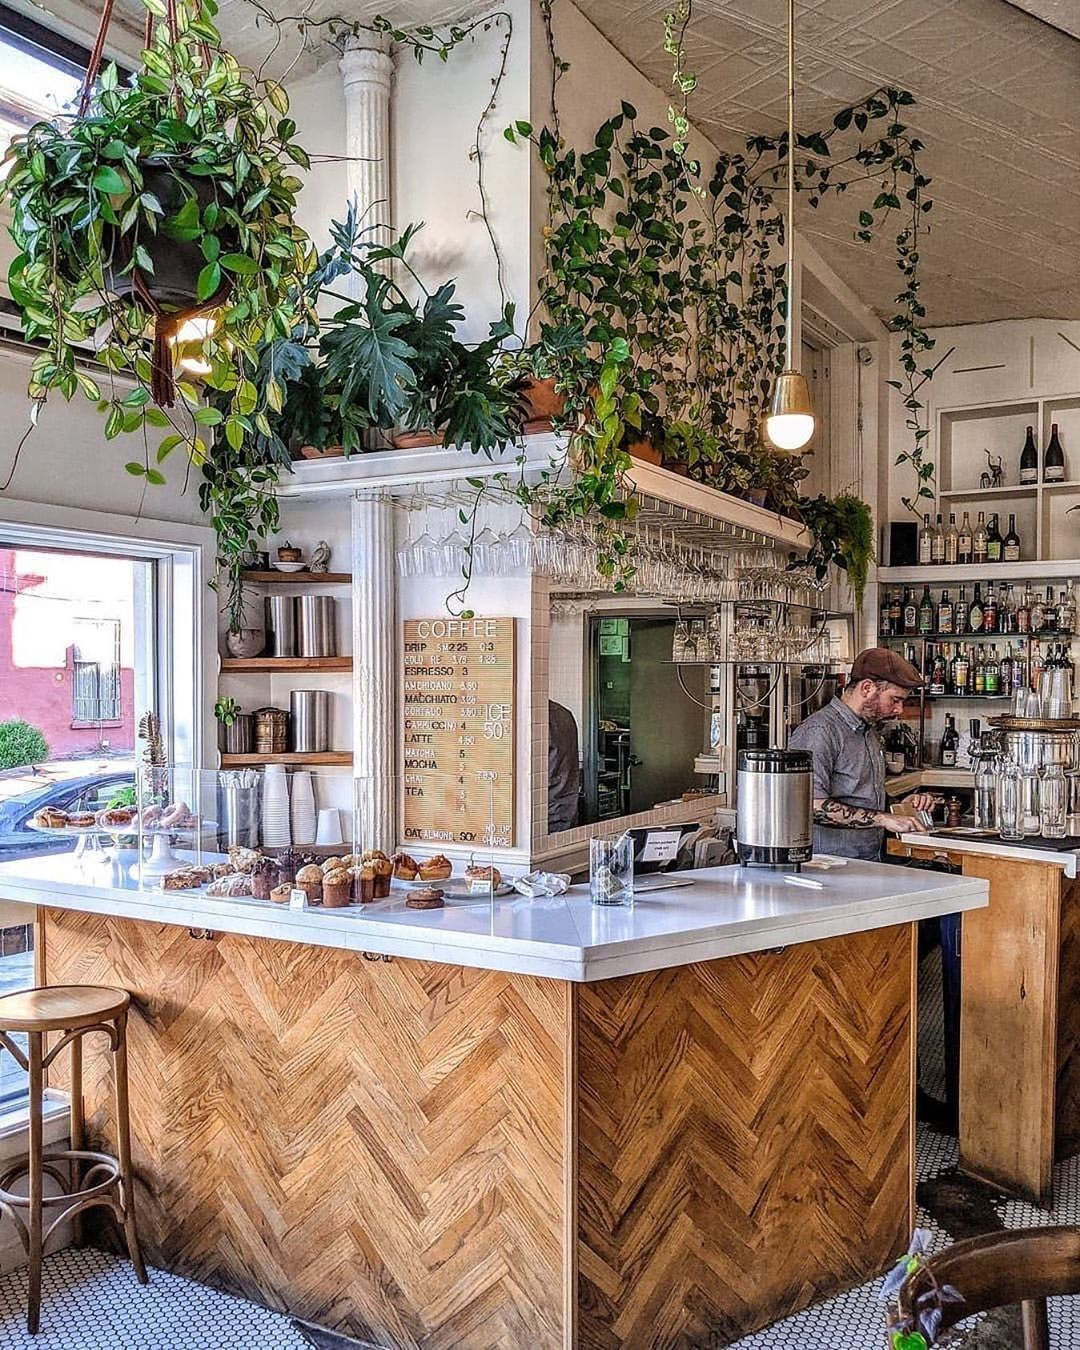 560 Likes 3 Comments I Plant Even Iplanteven On Instagram This Cute Brooklyn Coffee Shop Is The Perfe Restaurant Interior Kitchen Design Kitchen Layout